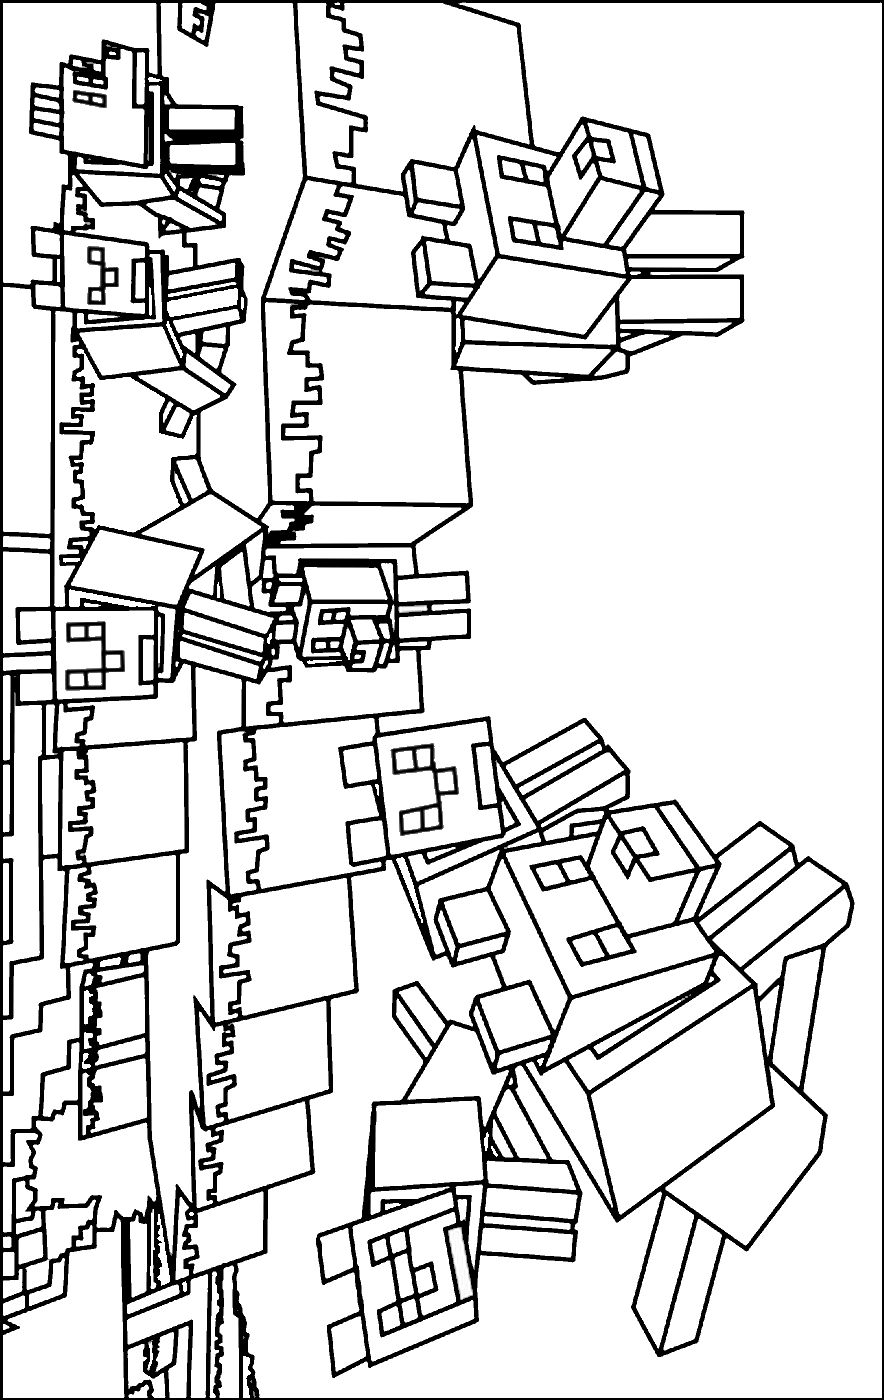 images of minecraft coloring pages minecraft to color for children minecraft kids coloring coloring images minecraft pages of